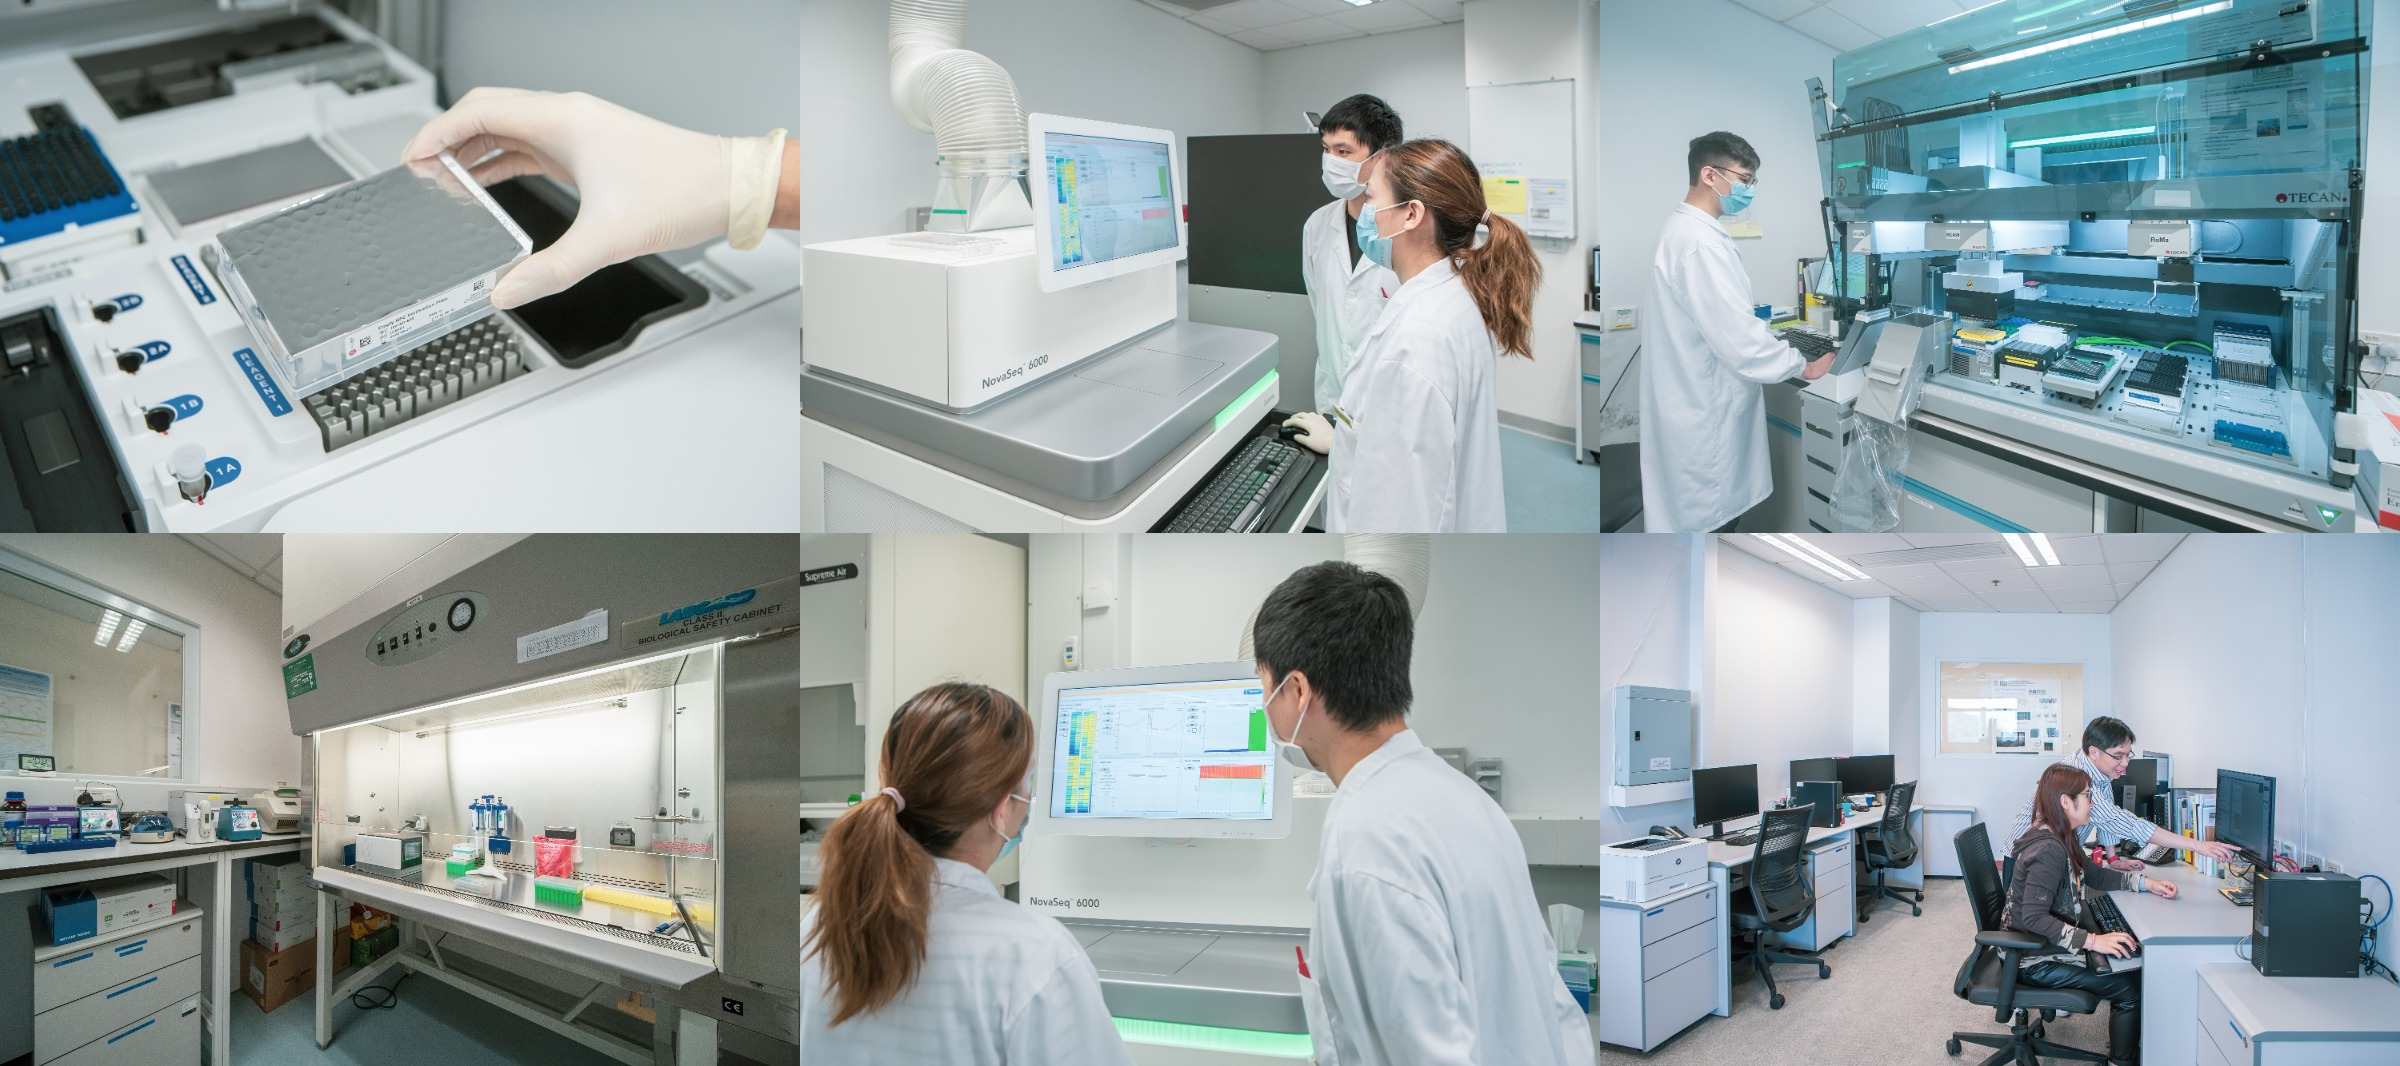 Centre for PanorOmic Sciences (CPOS), LKS Faculty of Medicine, The University of Hong Kong